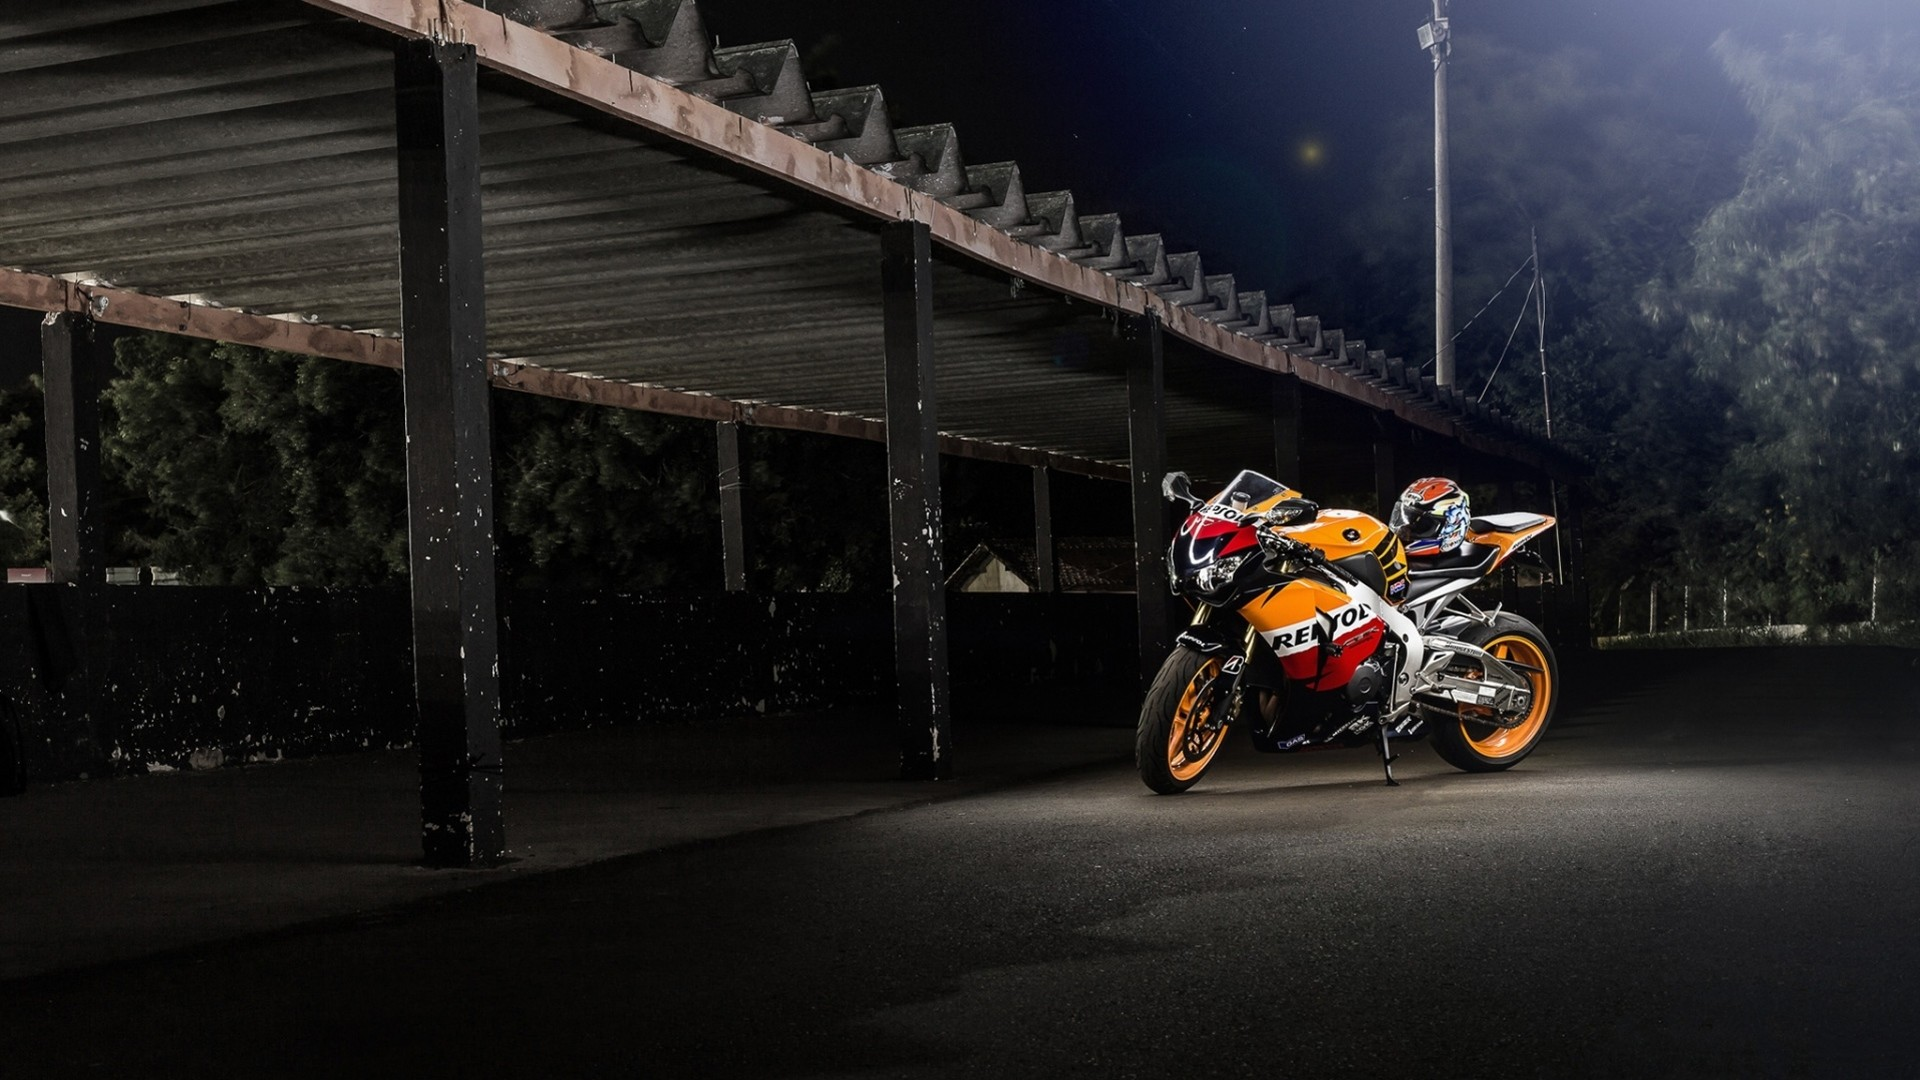 Honda Repsol Wallpaper Motorcycle: Honda Cbr1000Rr Wallpapers (72+ Pictures